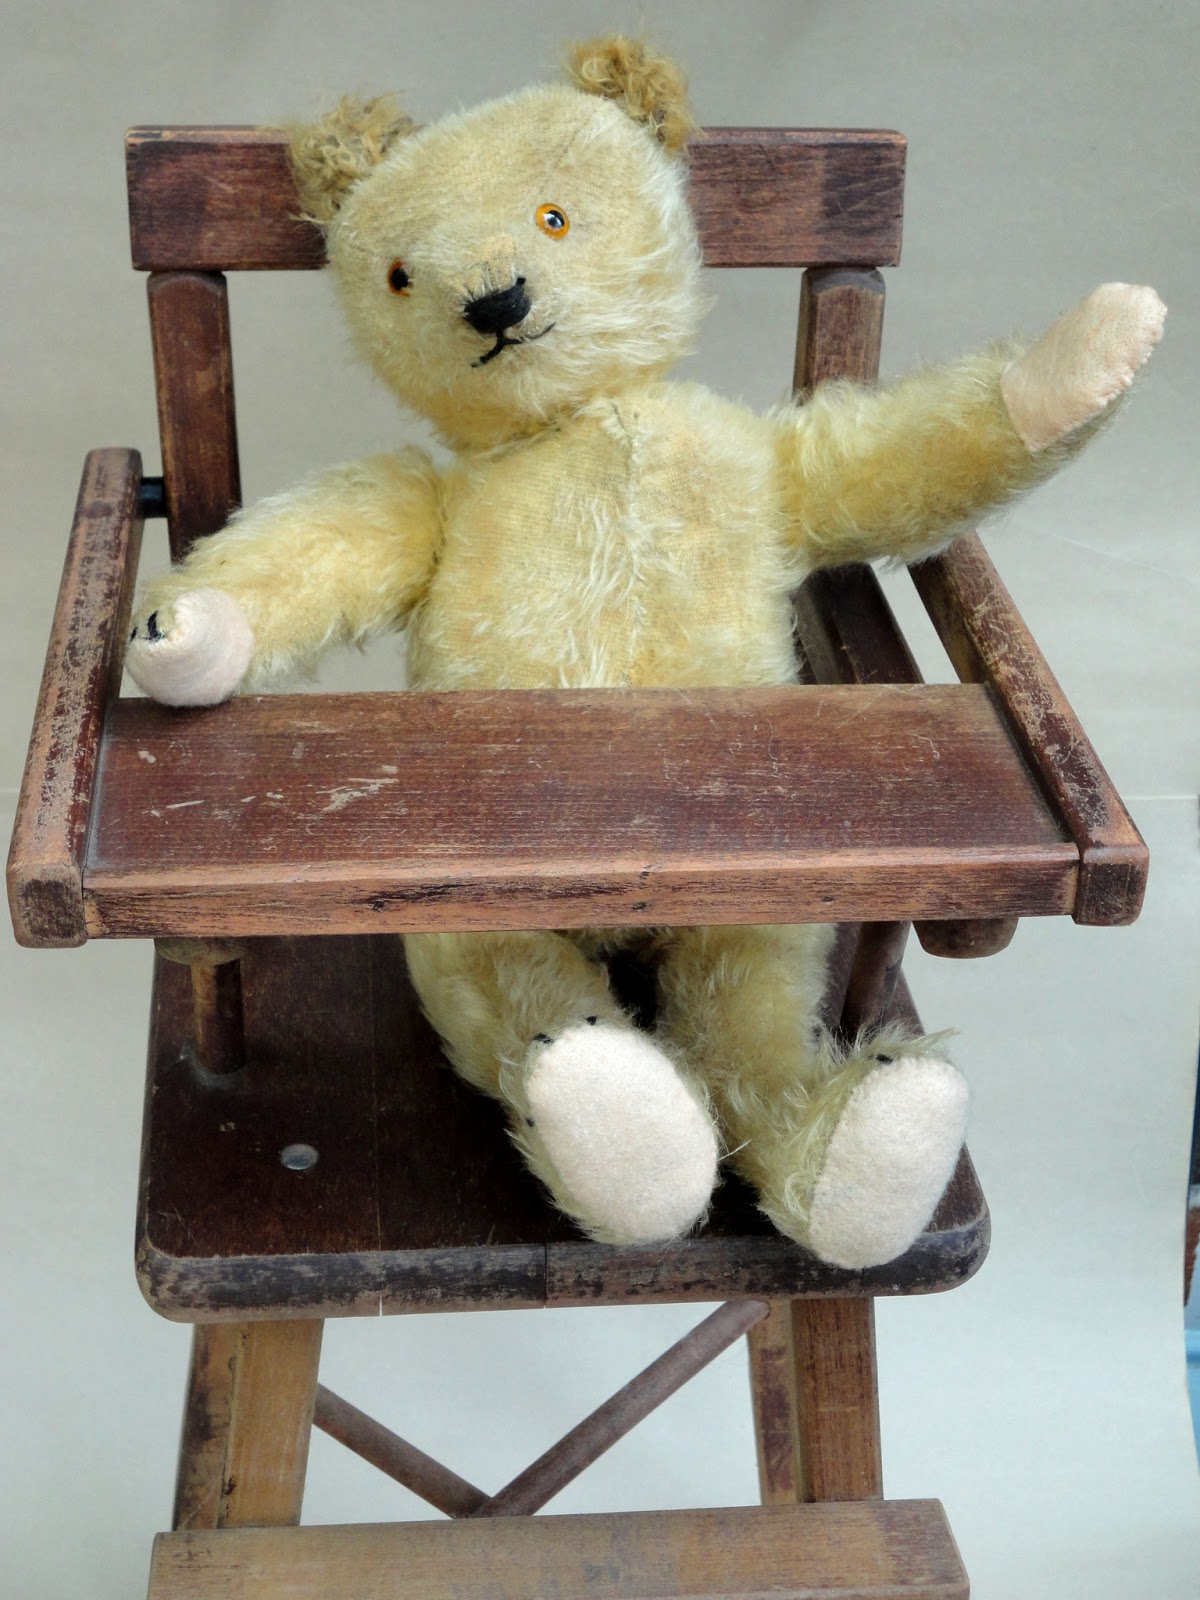 Refinish Or Leave In Itu0027s Original Rustic Condition To Complement Your  Vintage Teddy Bear.